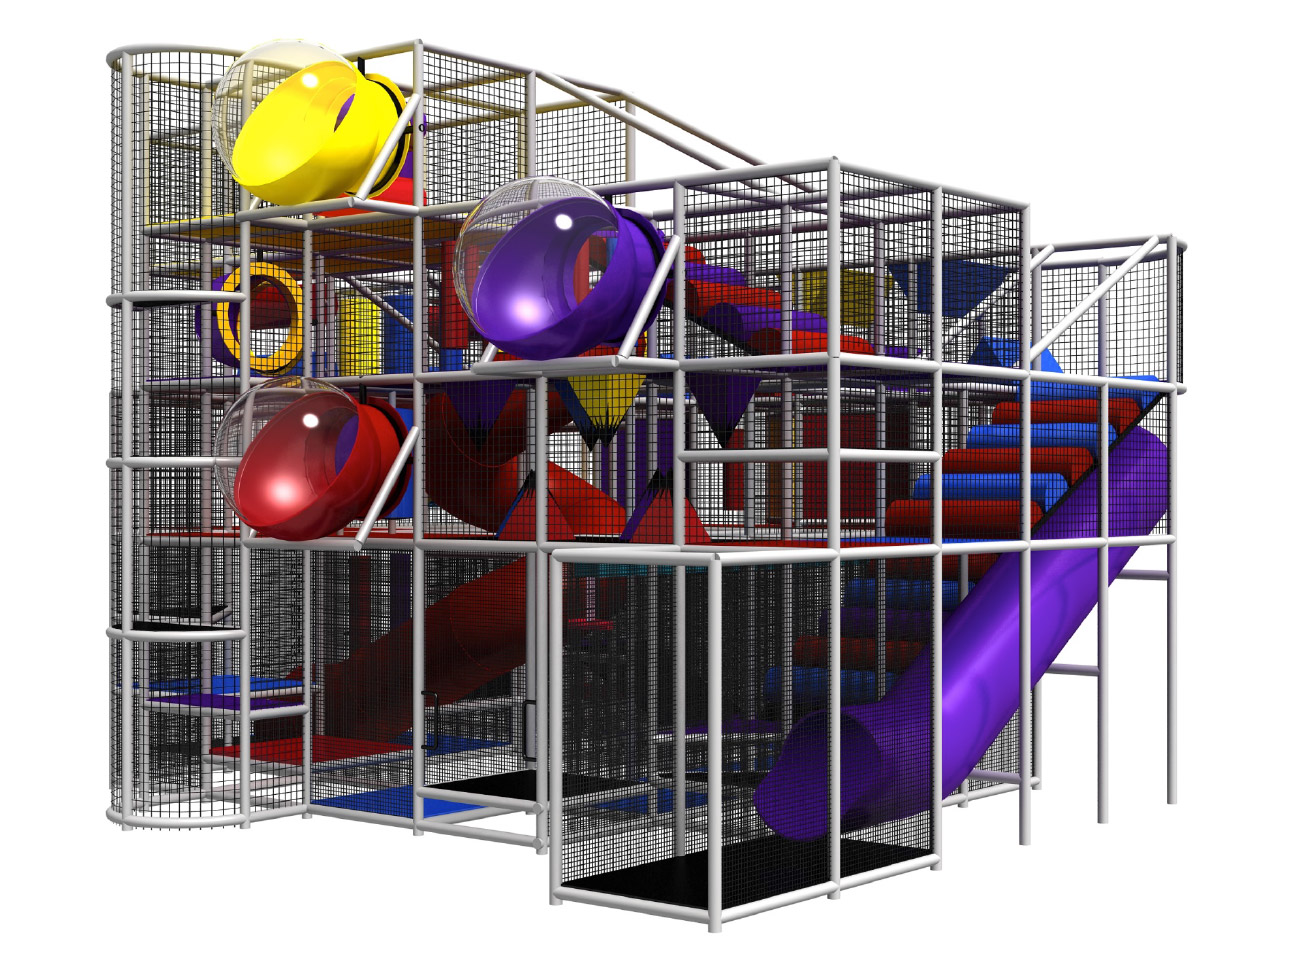 indoor space call kidsteam your value leader in indoor playground